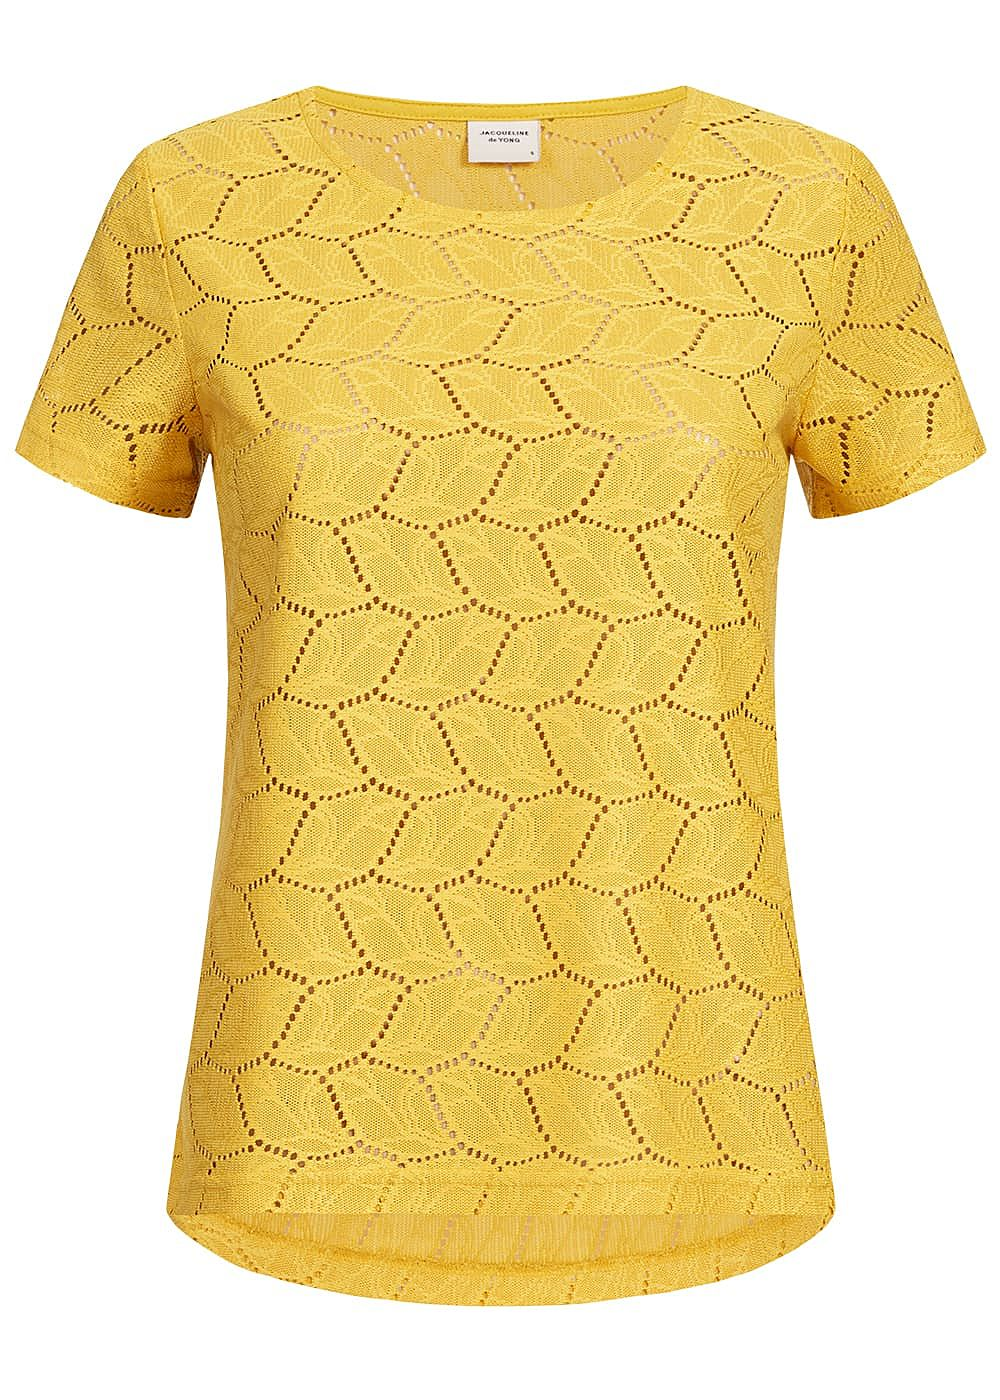 JDY by ONLY Damen T-Shirt Cut Out NOOS mustard gelb - Art.-Nr.: 19041612